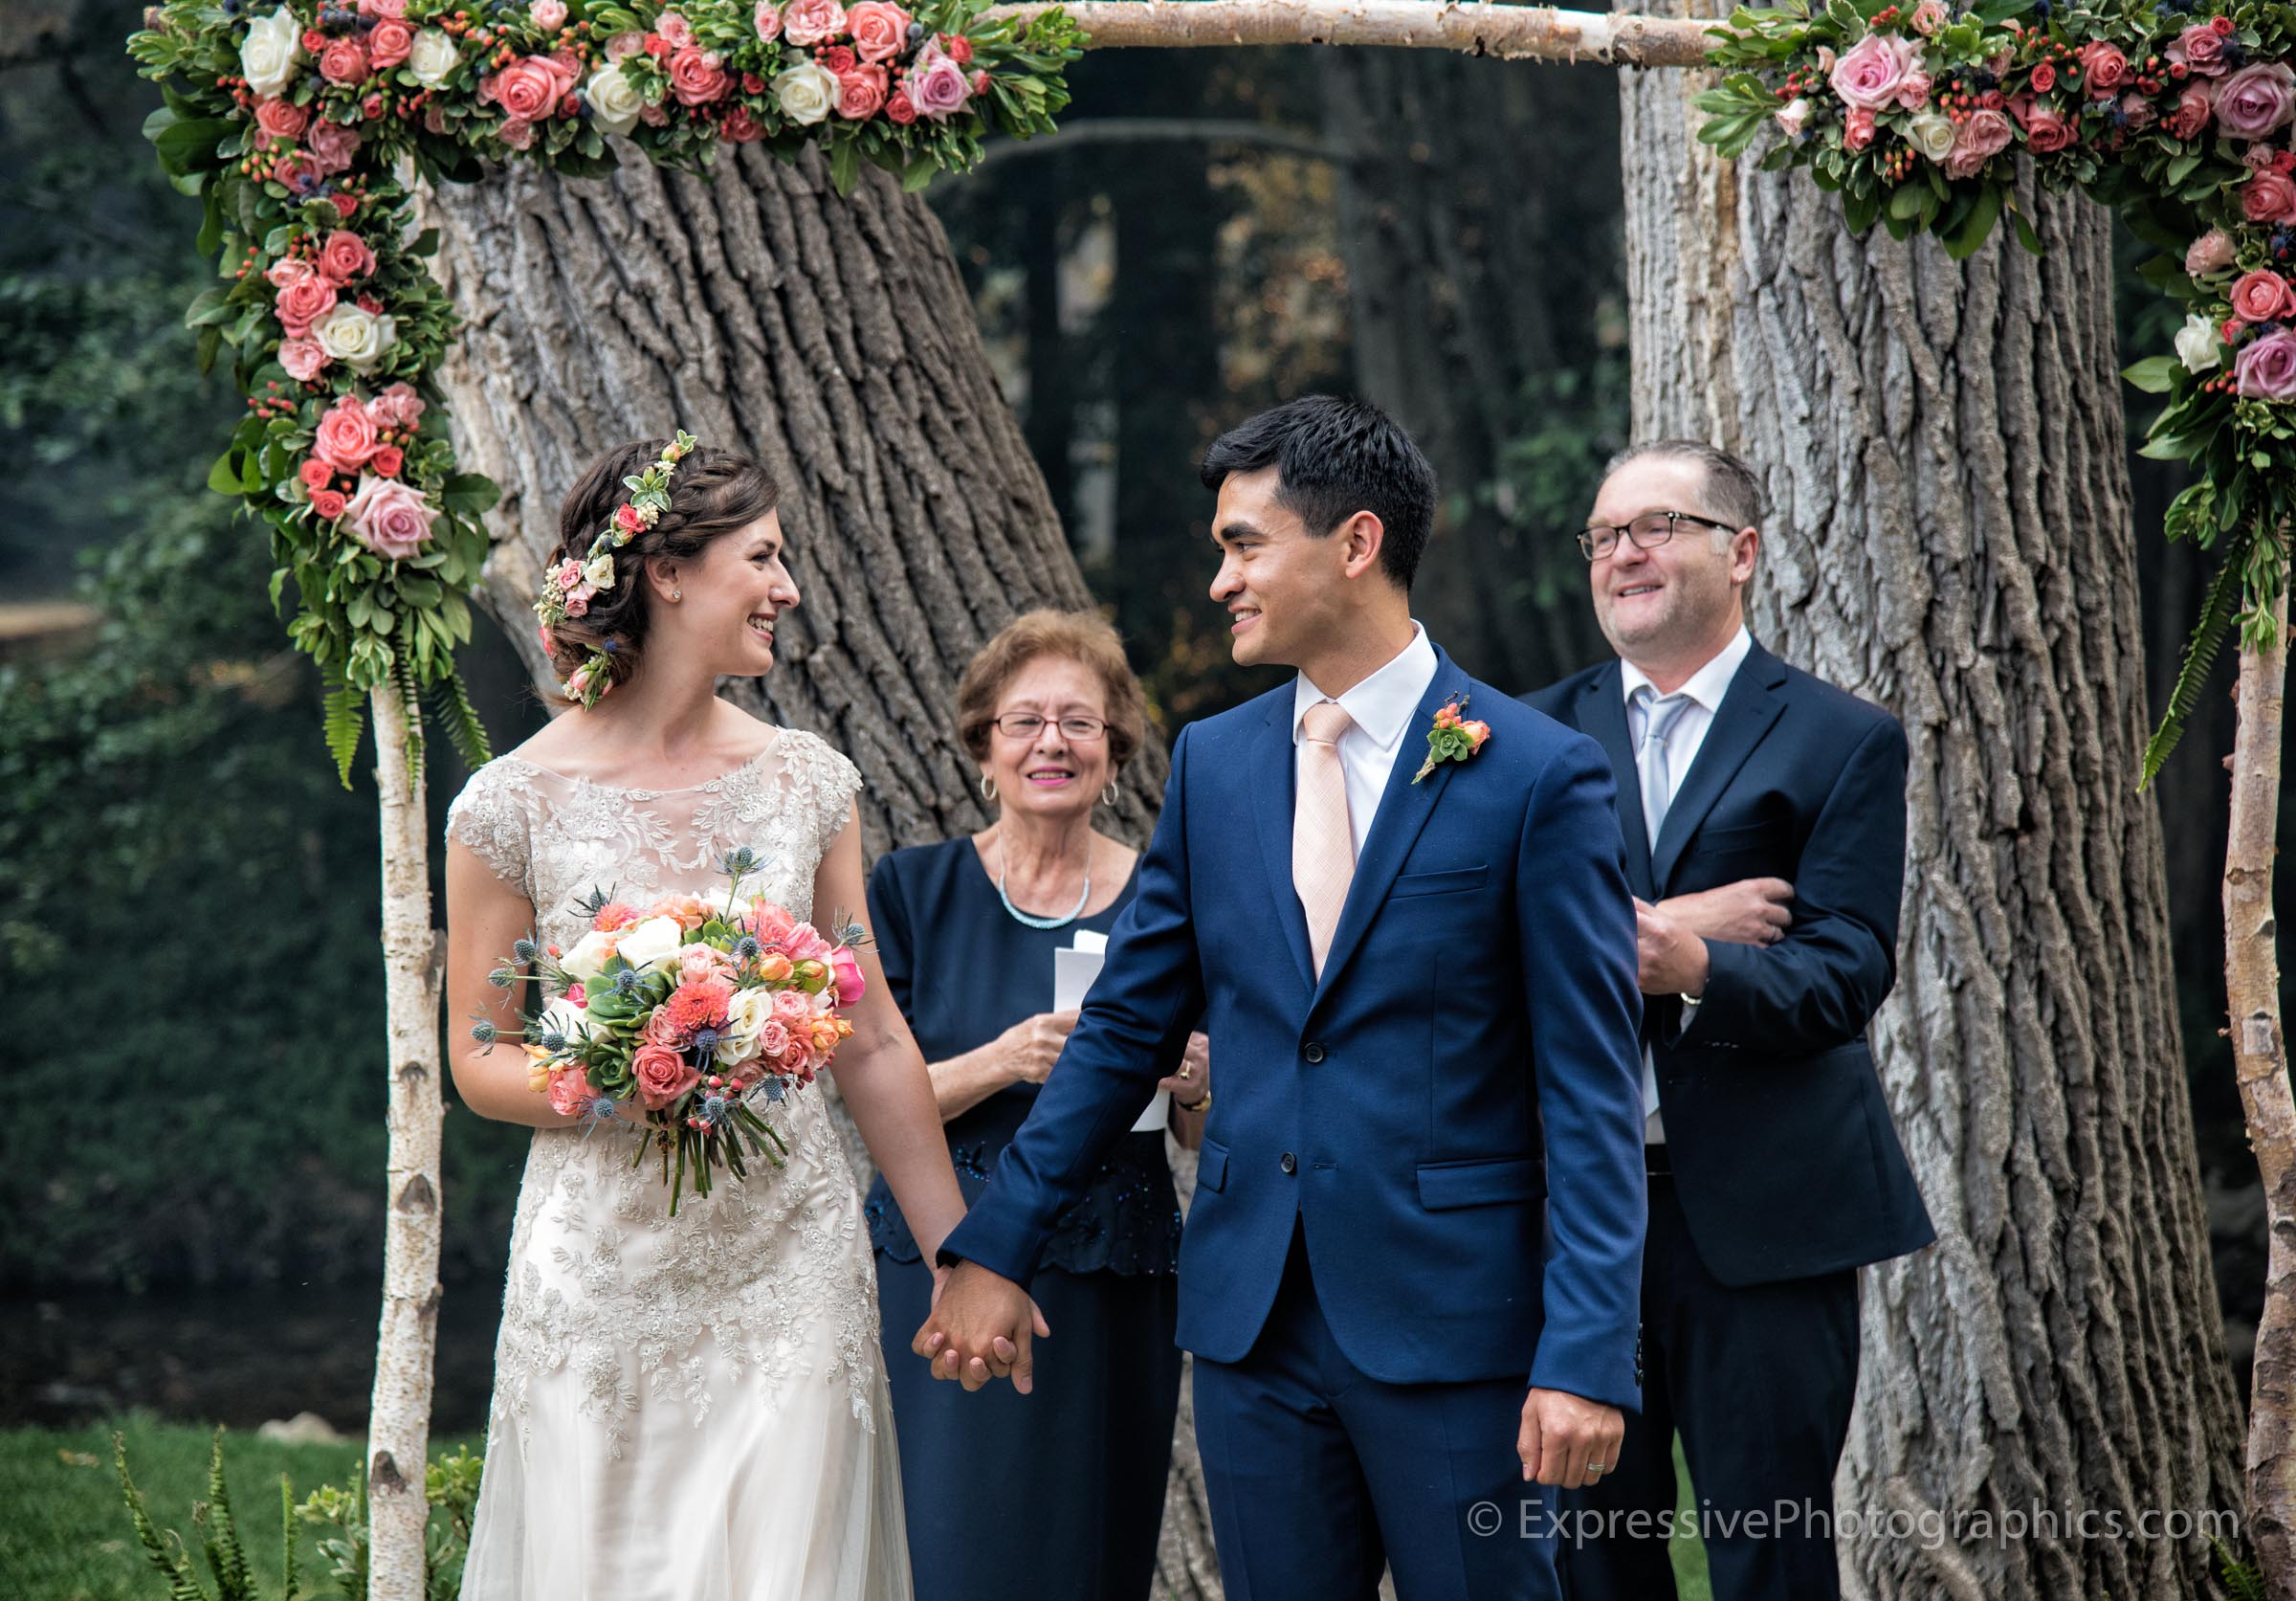 Expressive-Photographics-just-married-20160723_0741_R.jpg